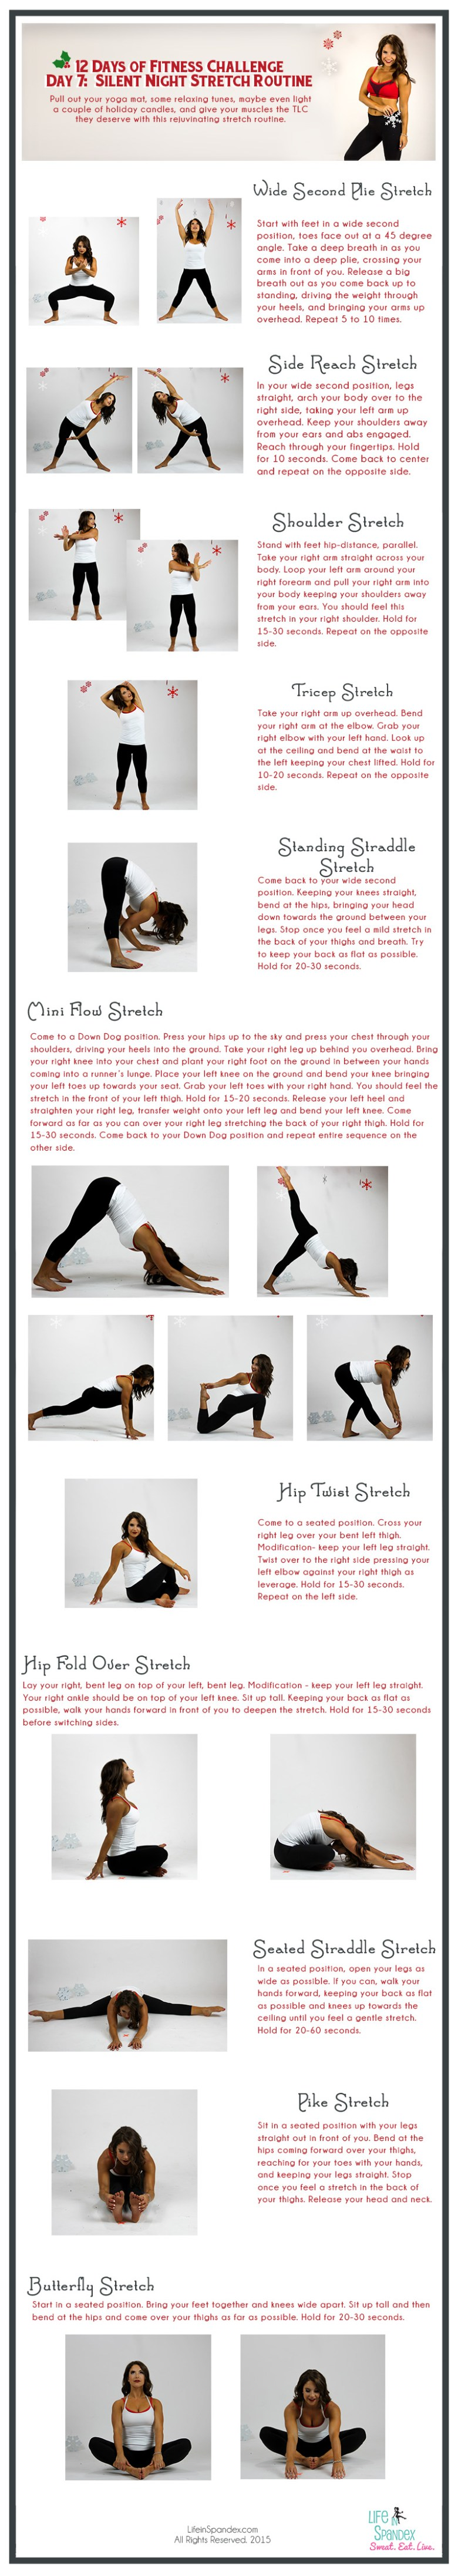 12 Days of Fitness Day 7 Stretch Yoga Routine